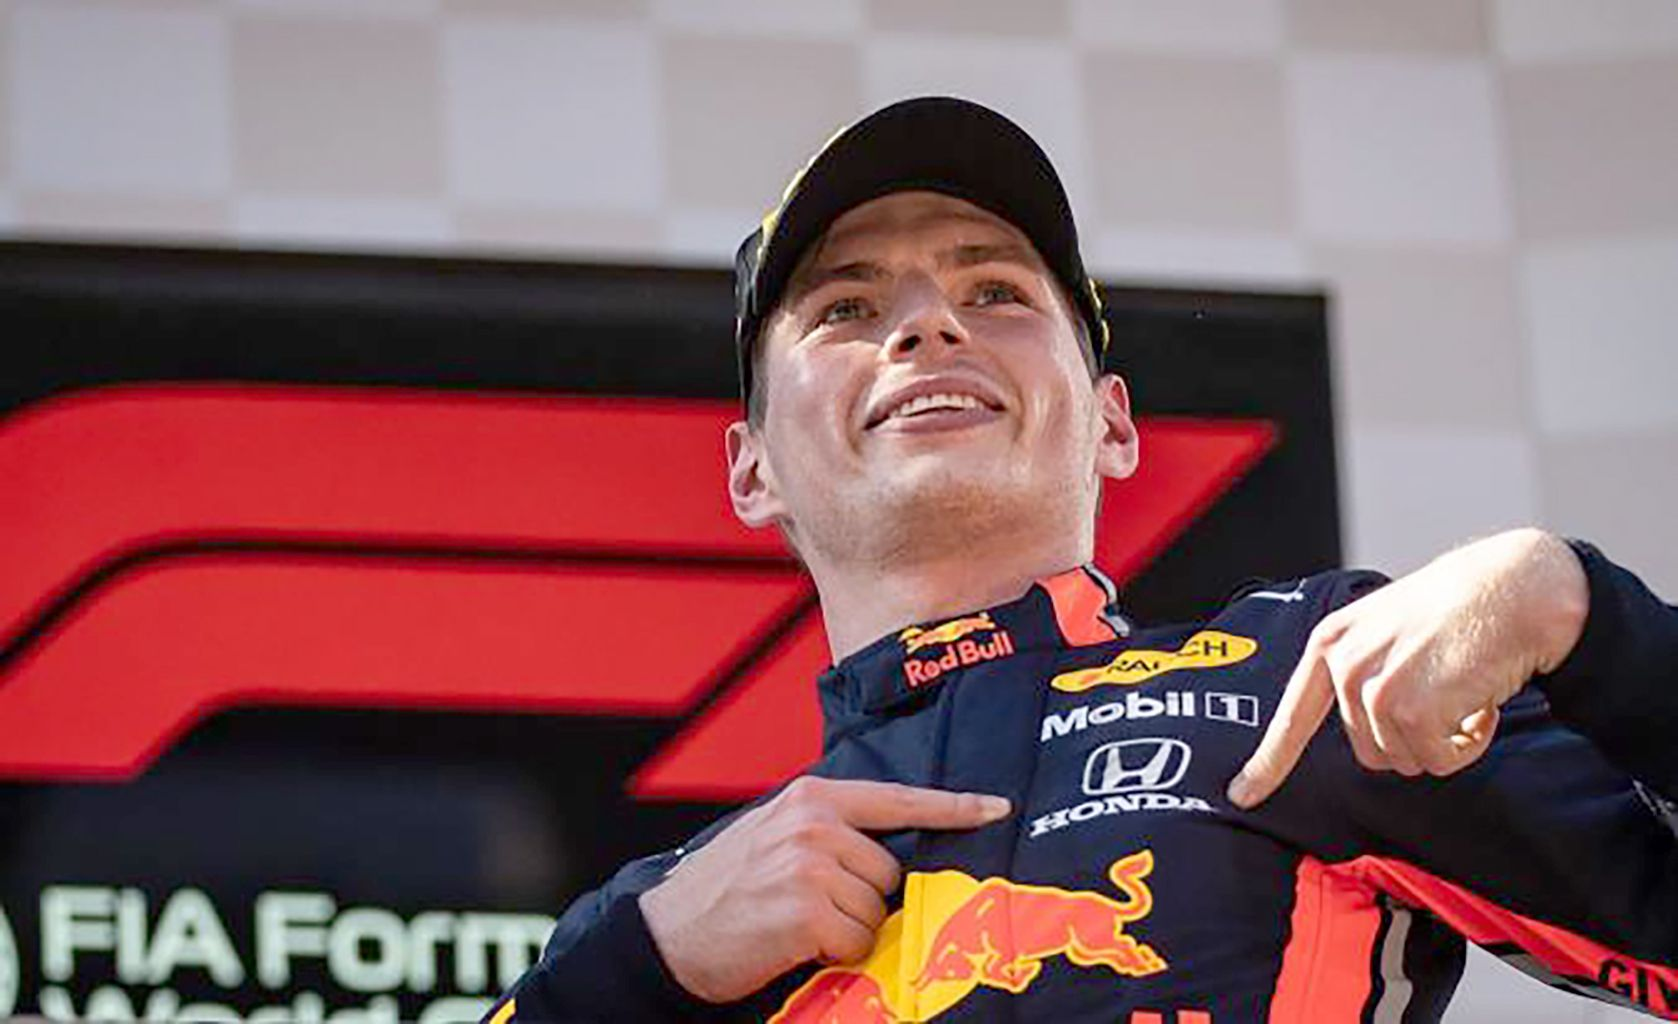 FIRST WIN OF THE YEAR: Max Verstappen celebrates his superb victory in an action-packed Emilia Romagna Grand Prix at Imola Italy